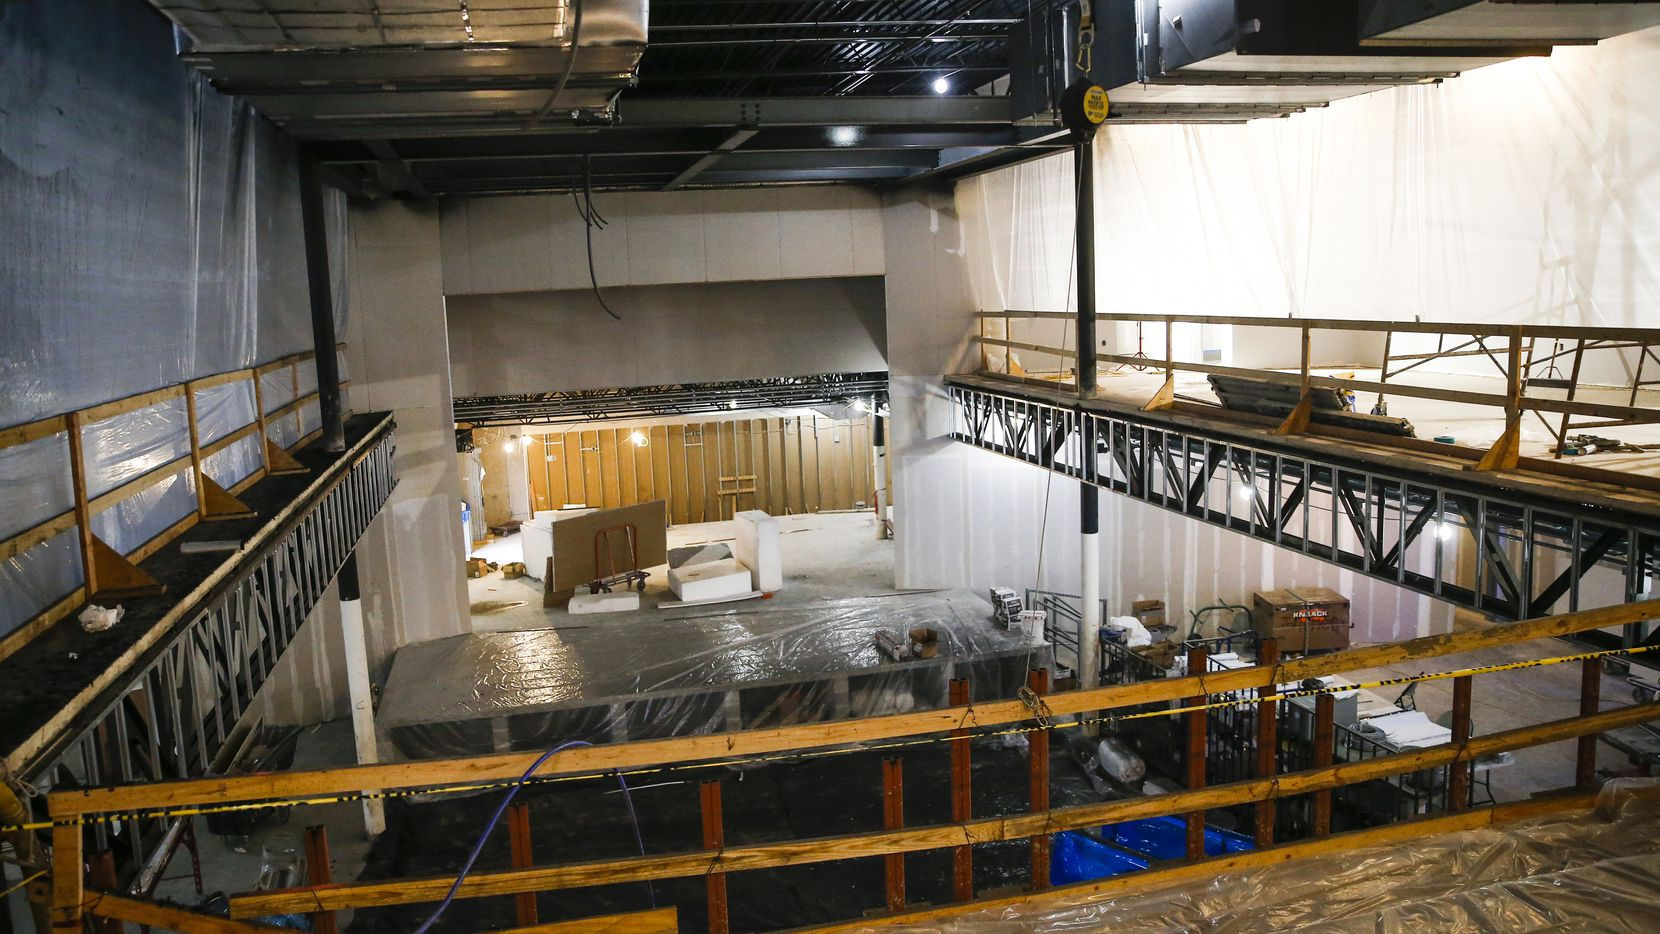 Construction crews work at new Live Nation concert venue The HiFi Dallas, which is set to open in Dallas' Design District in May.